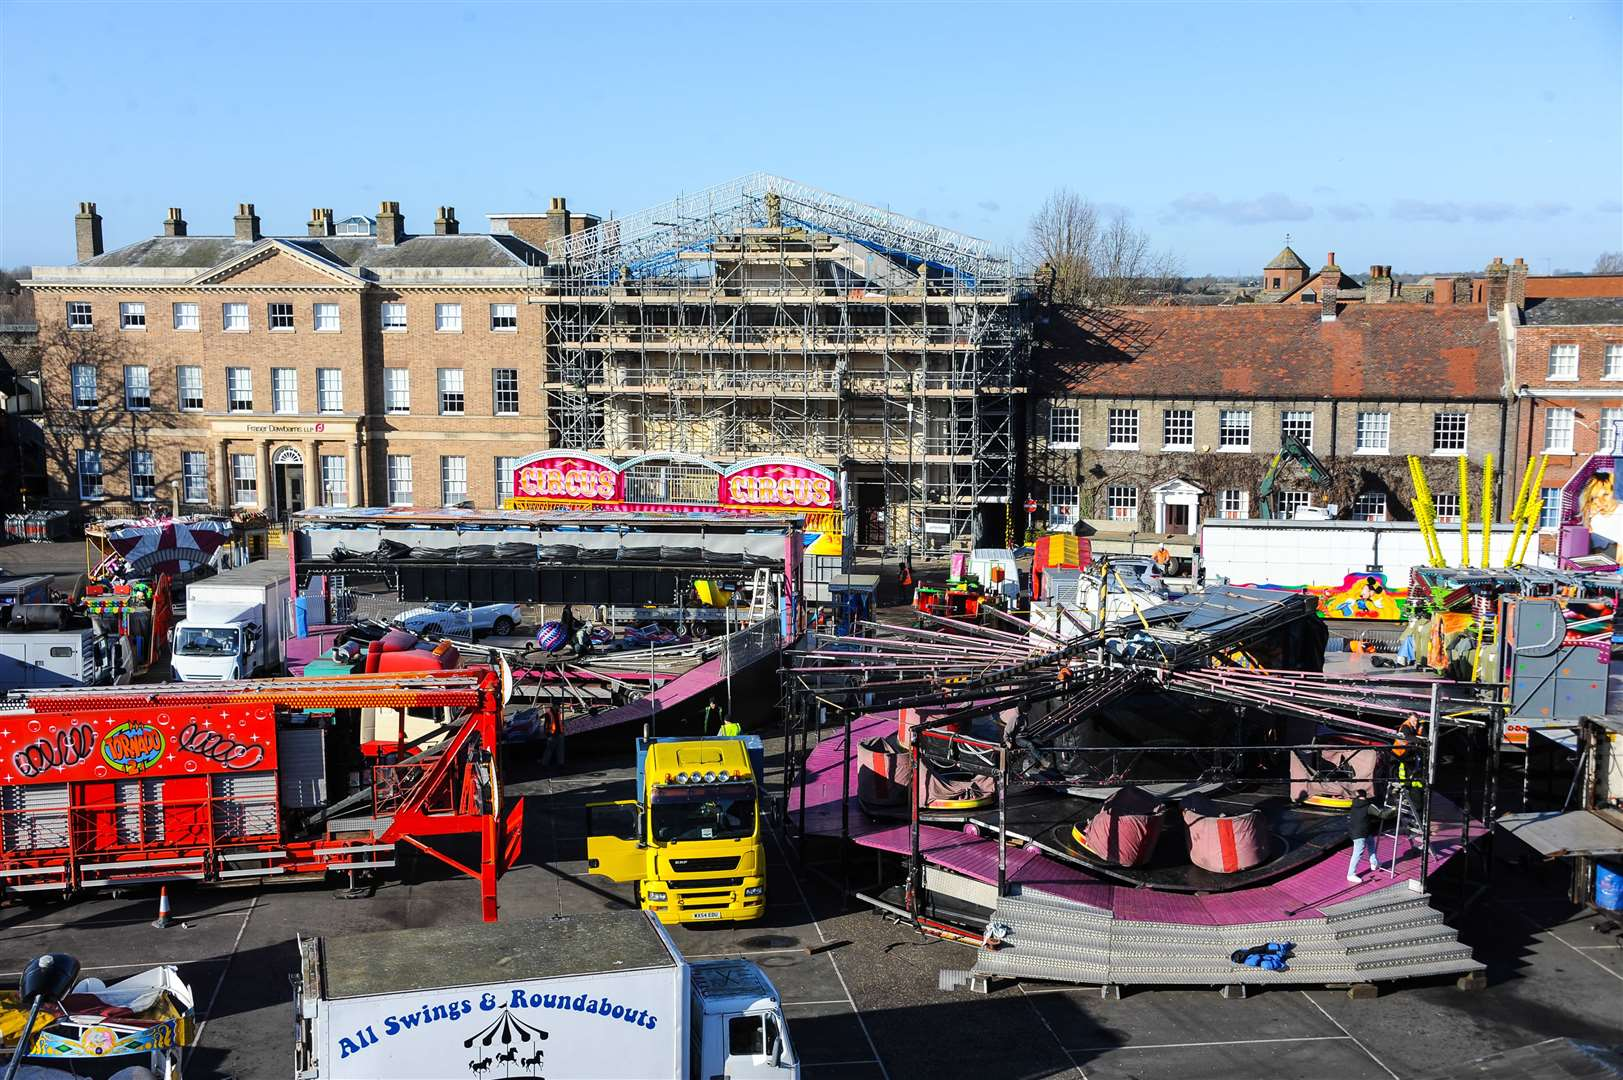 How the Tuesday Market Place looked a year ago at the start of the Mart.